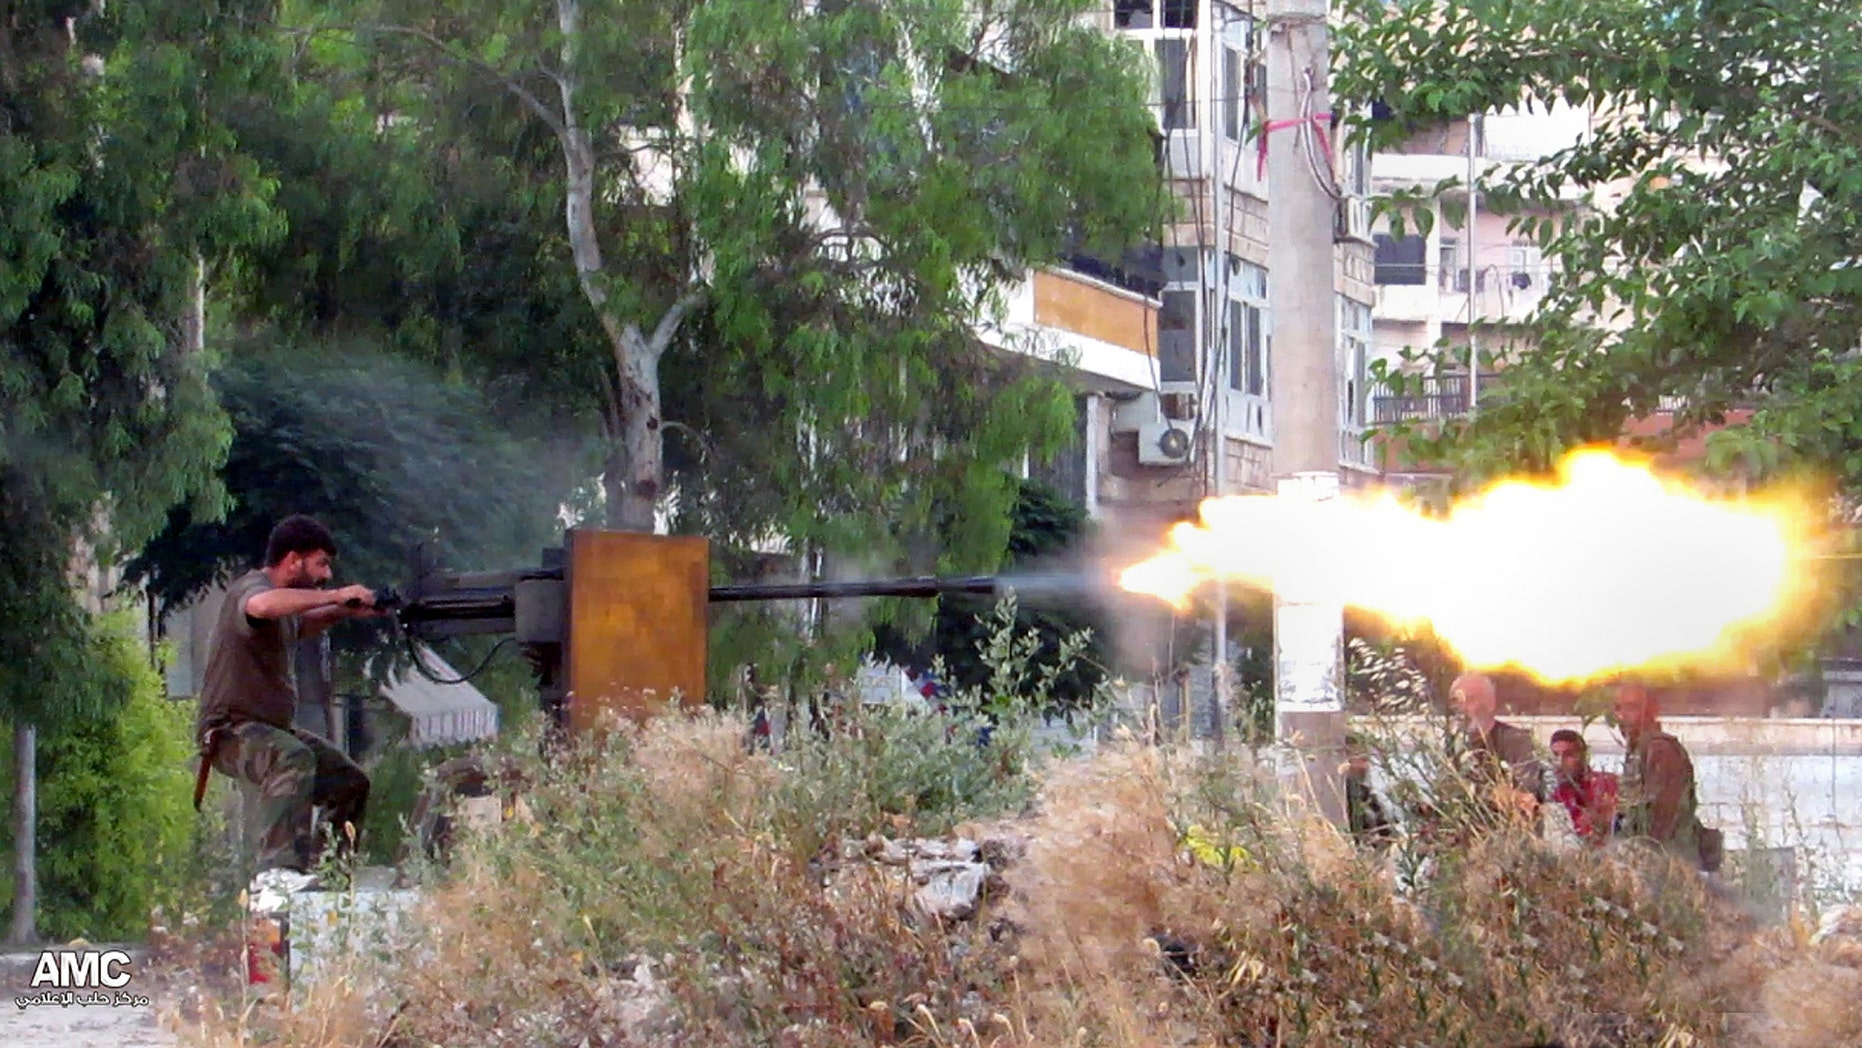 June 20, 2013 - A Syrian rebel firing a heavy machine gun towards Syrian soldiers loyal to Syrian president Bashar Assad, in Aleppo, Syria. (Citizen journalism image provided by Aleppo Media Center AMC.)